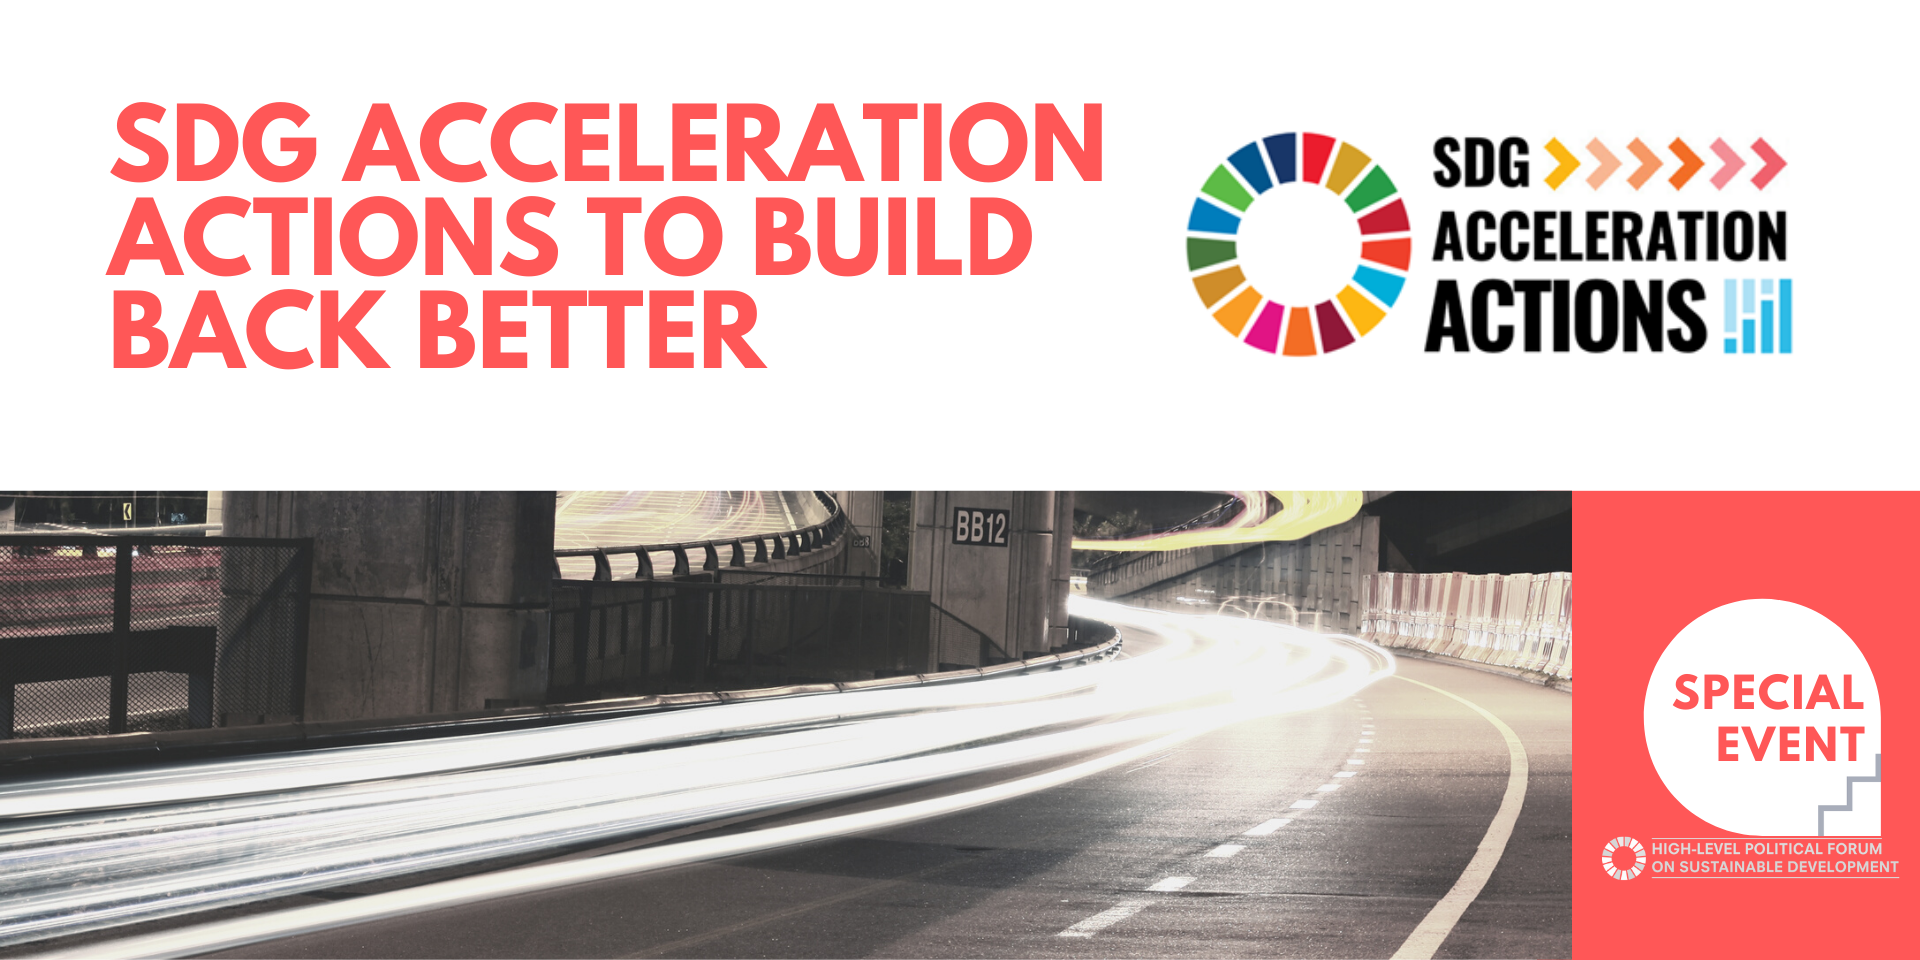 SDG ACCELERATION ACTIONS